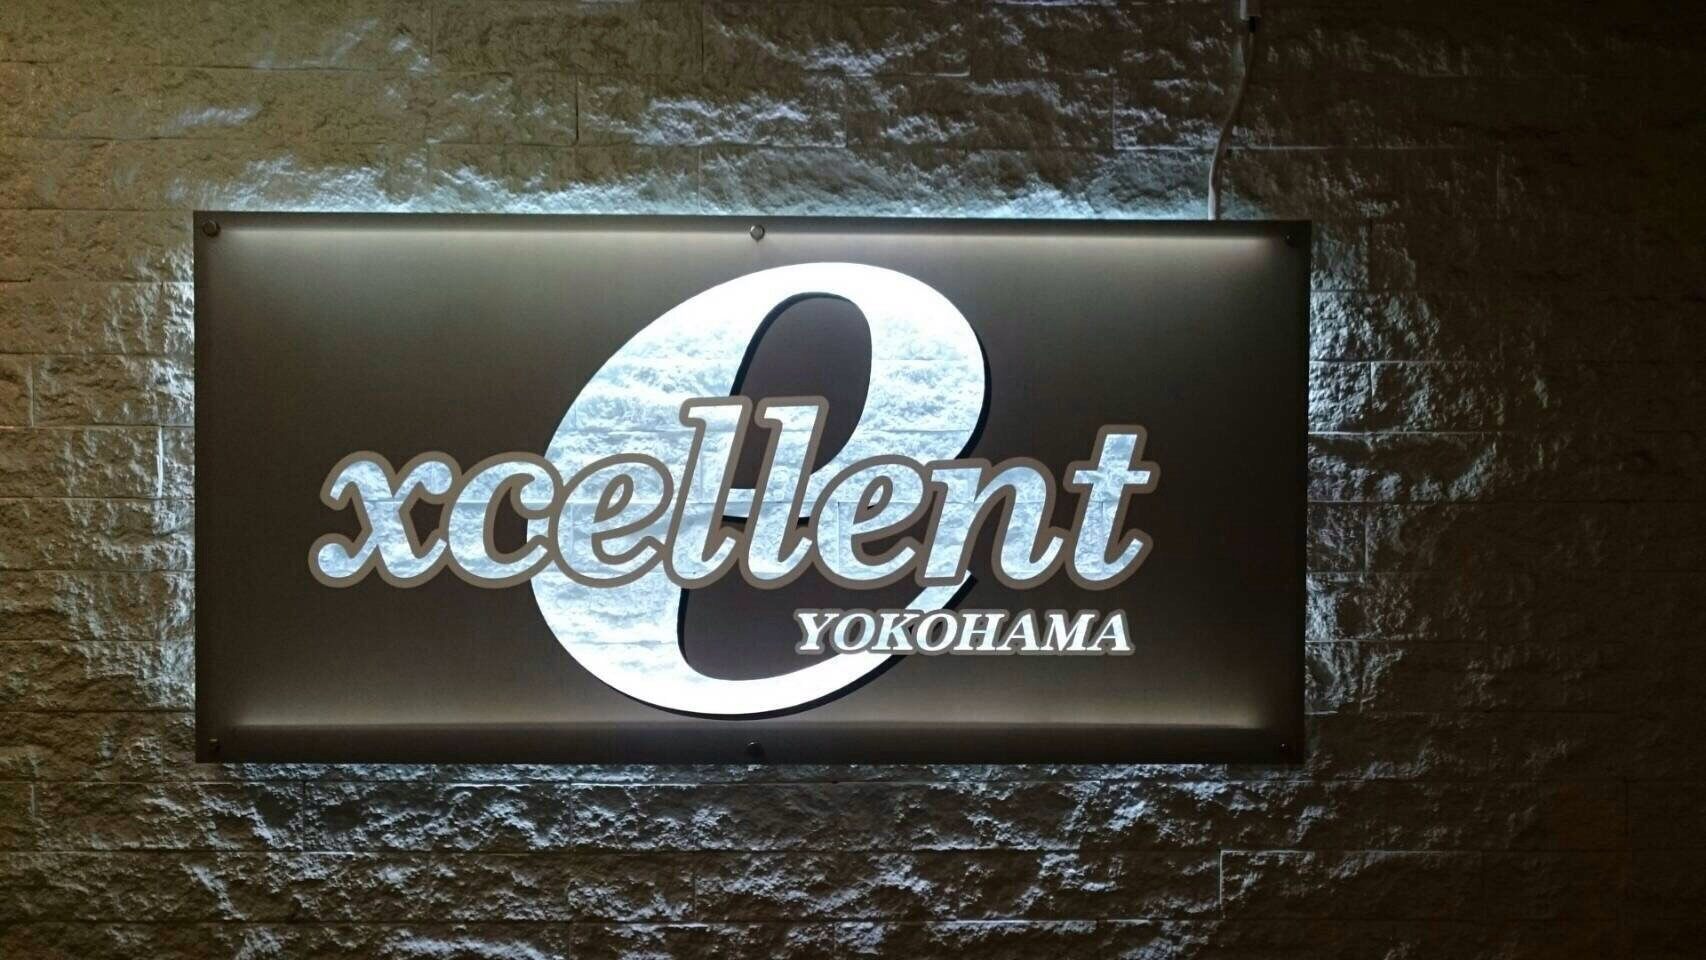 EXCELLENT(エクセレント)・福富町